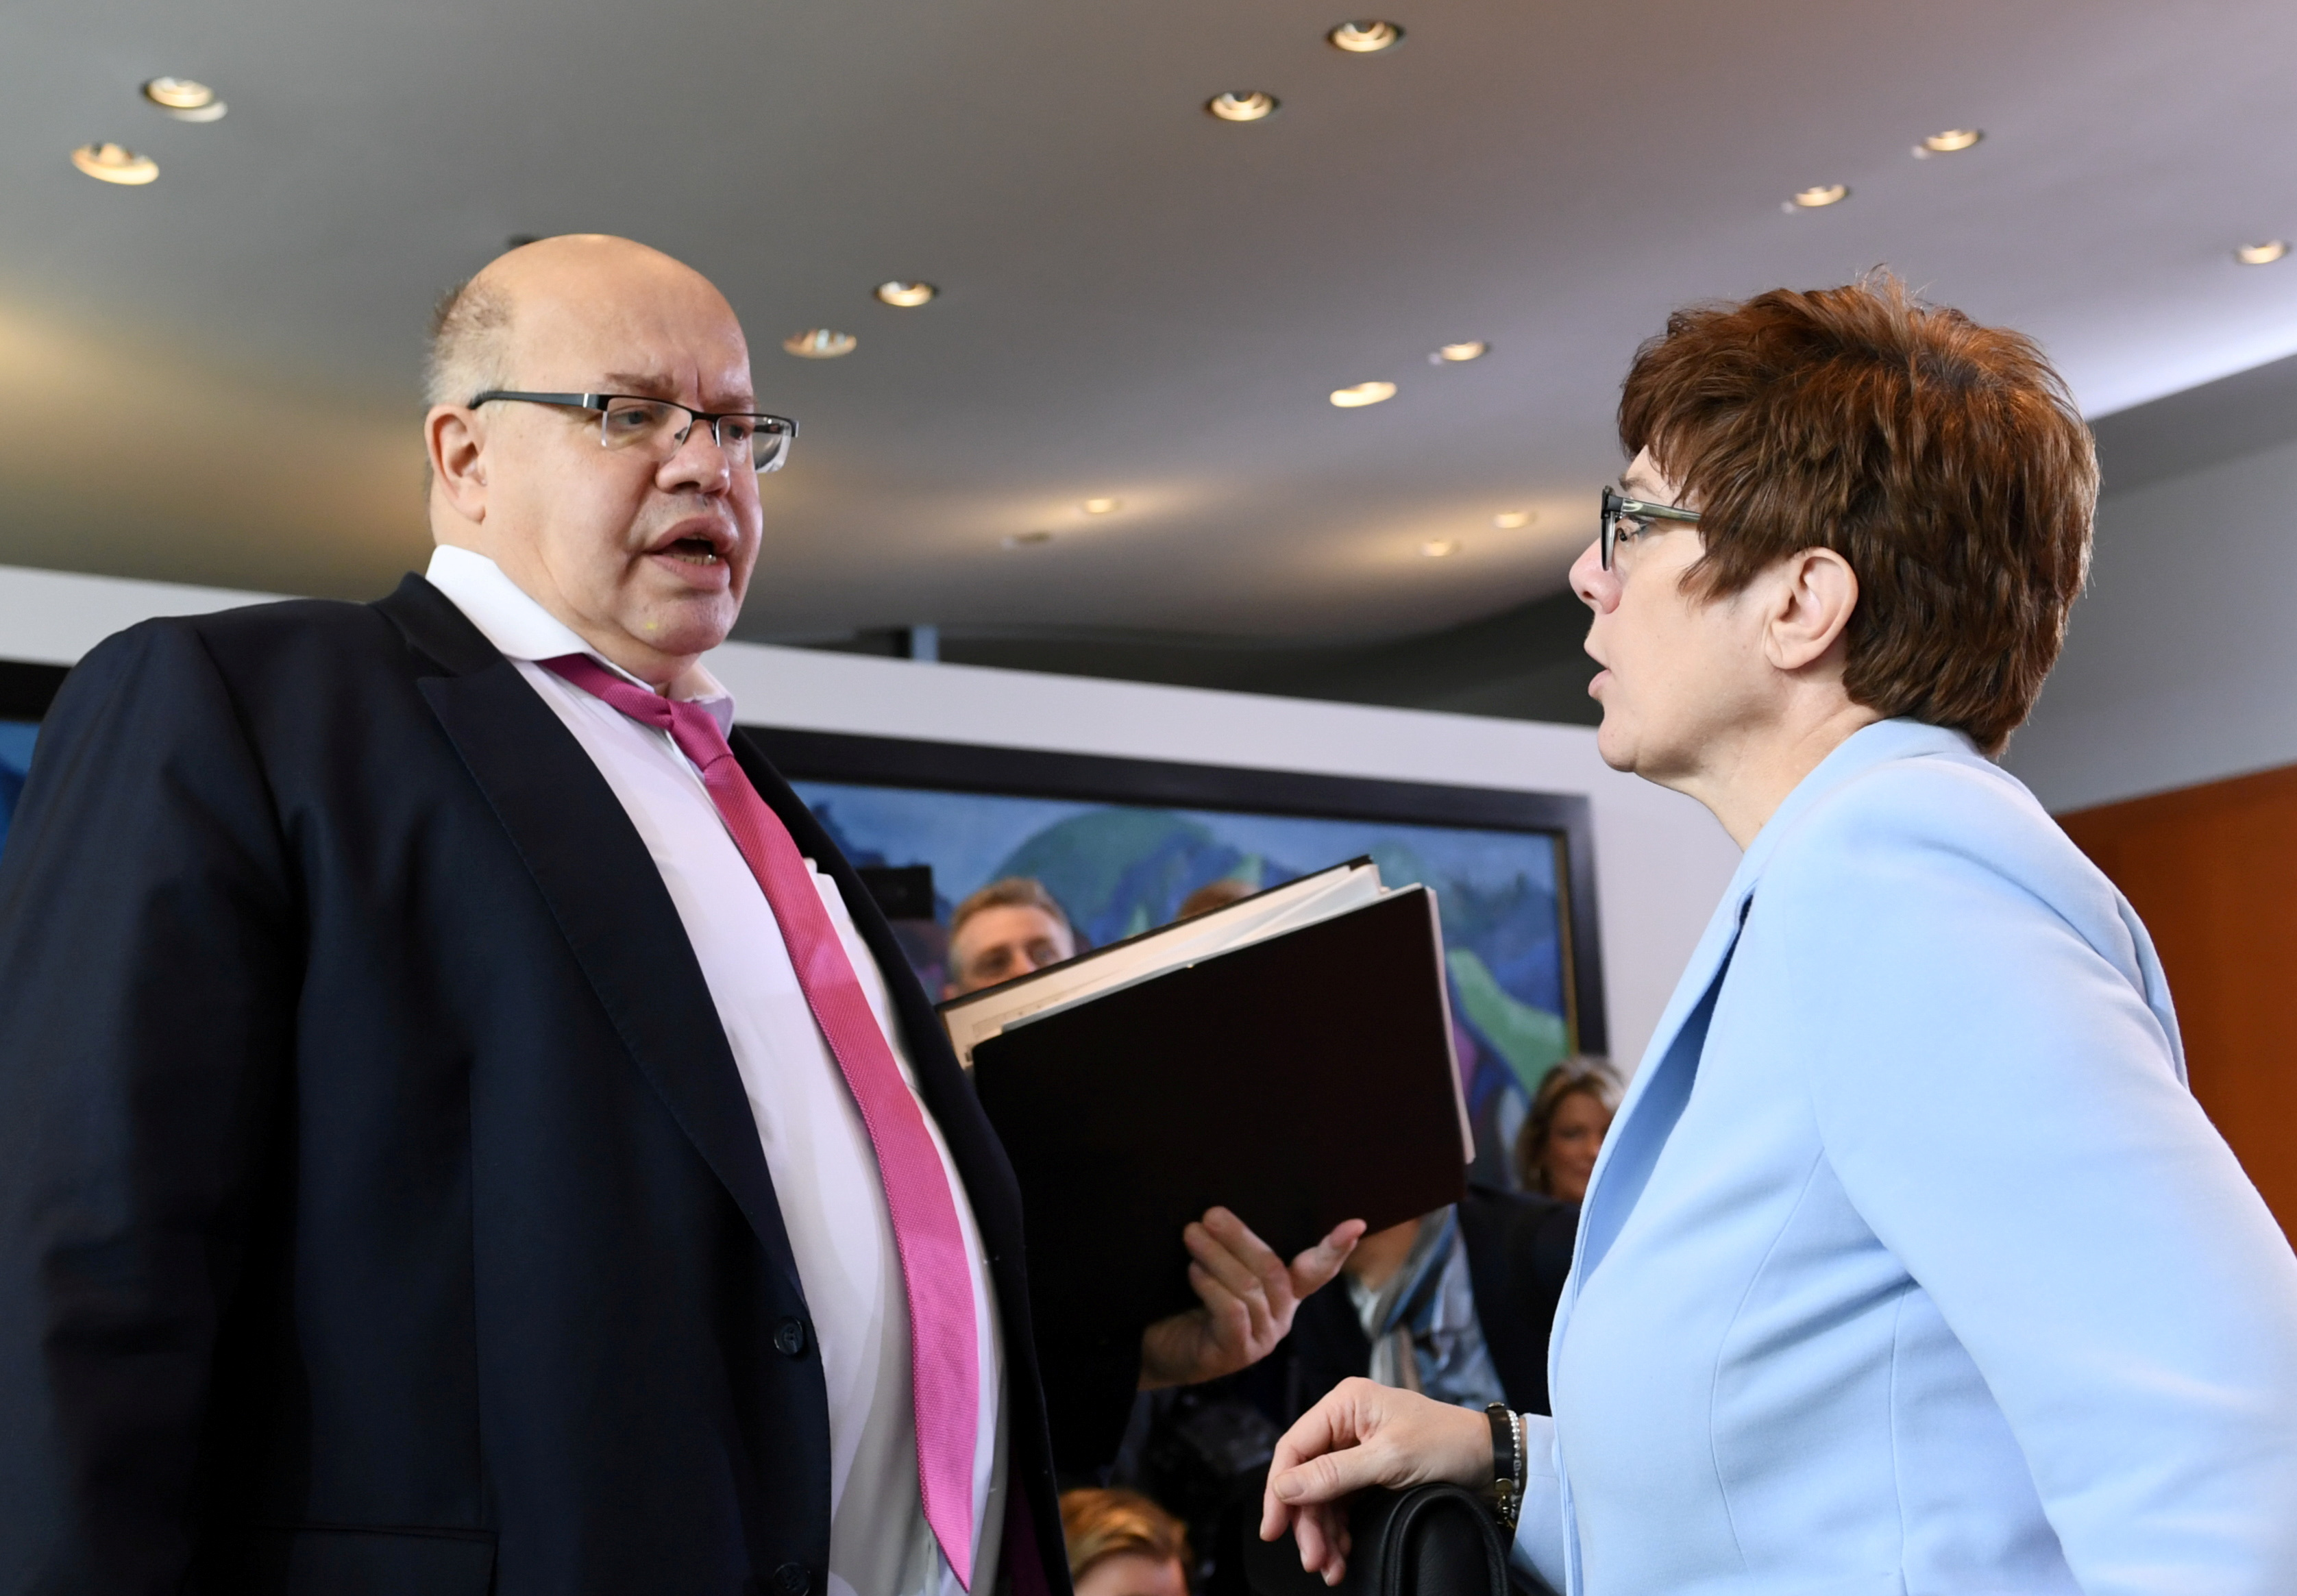 German Economy Minister Peter Altmaier speaks with German Defense Minister Annegret Kramp-Karrenbauer before the weekly German cabinet meeting at the Chancellery in Berlin, Germany, December 18, 2019.  REUTERS/Annegret Hilse/File Photo